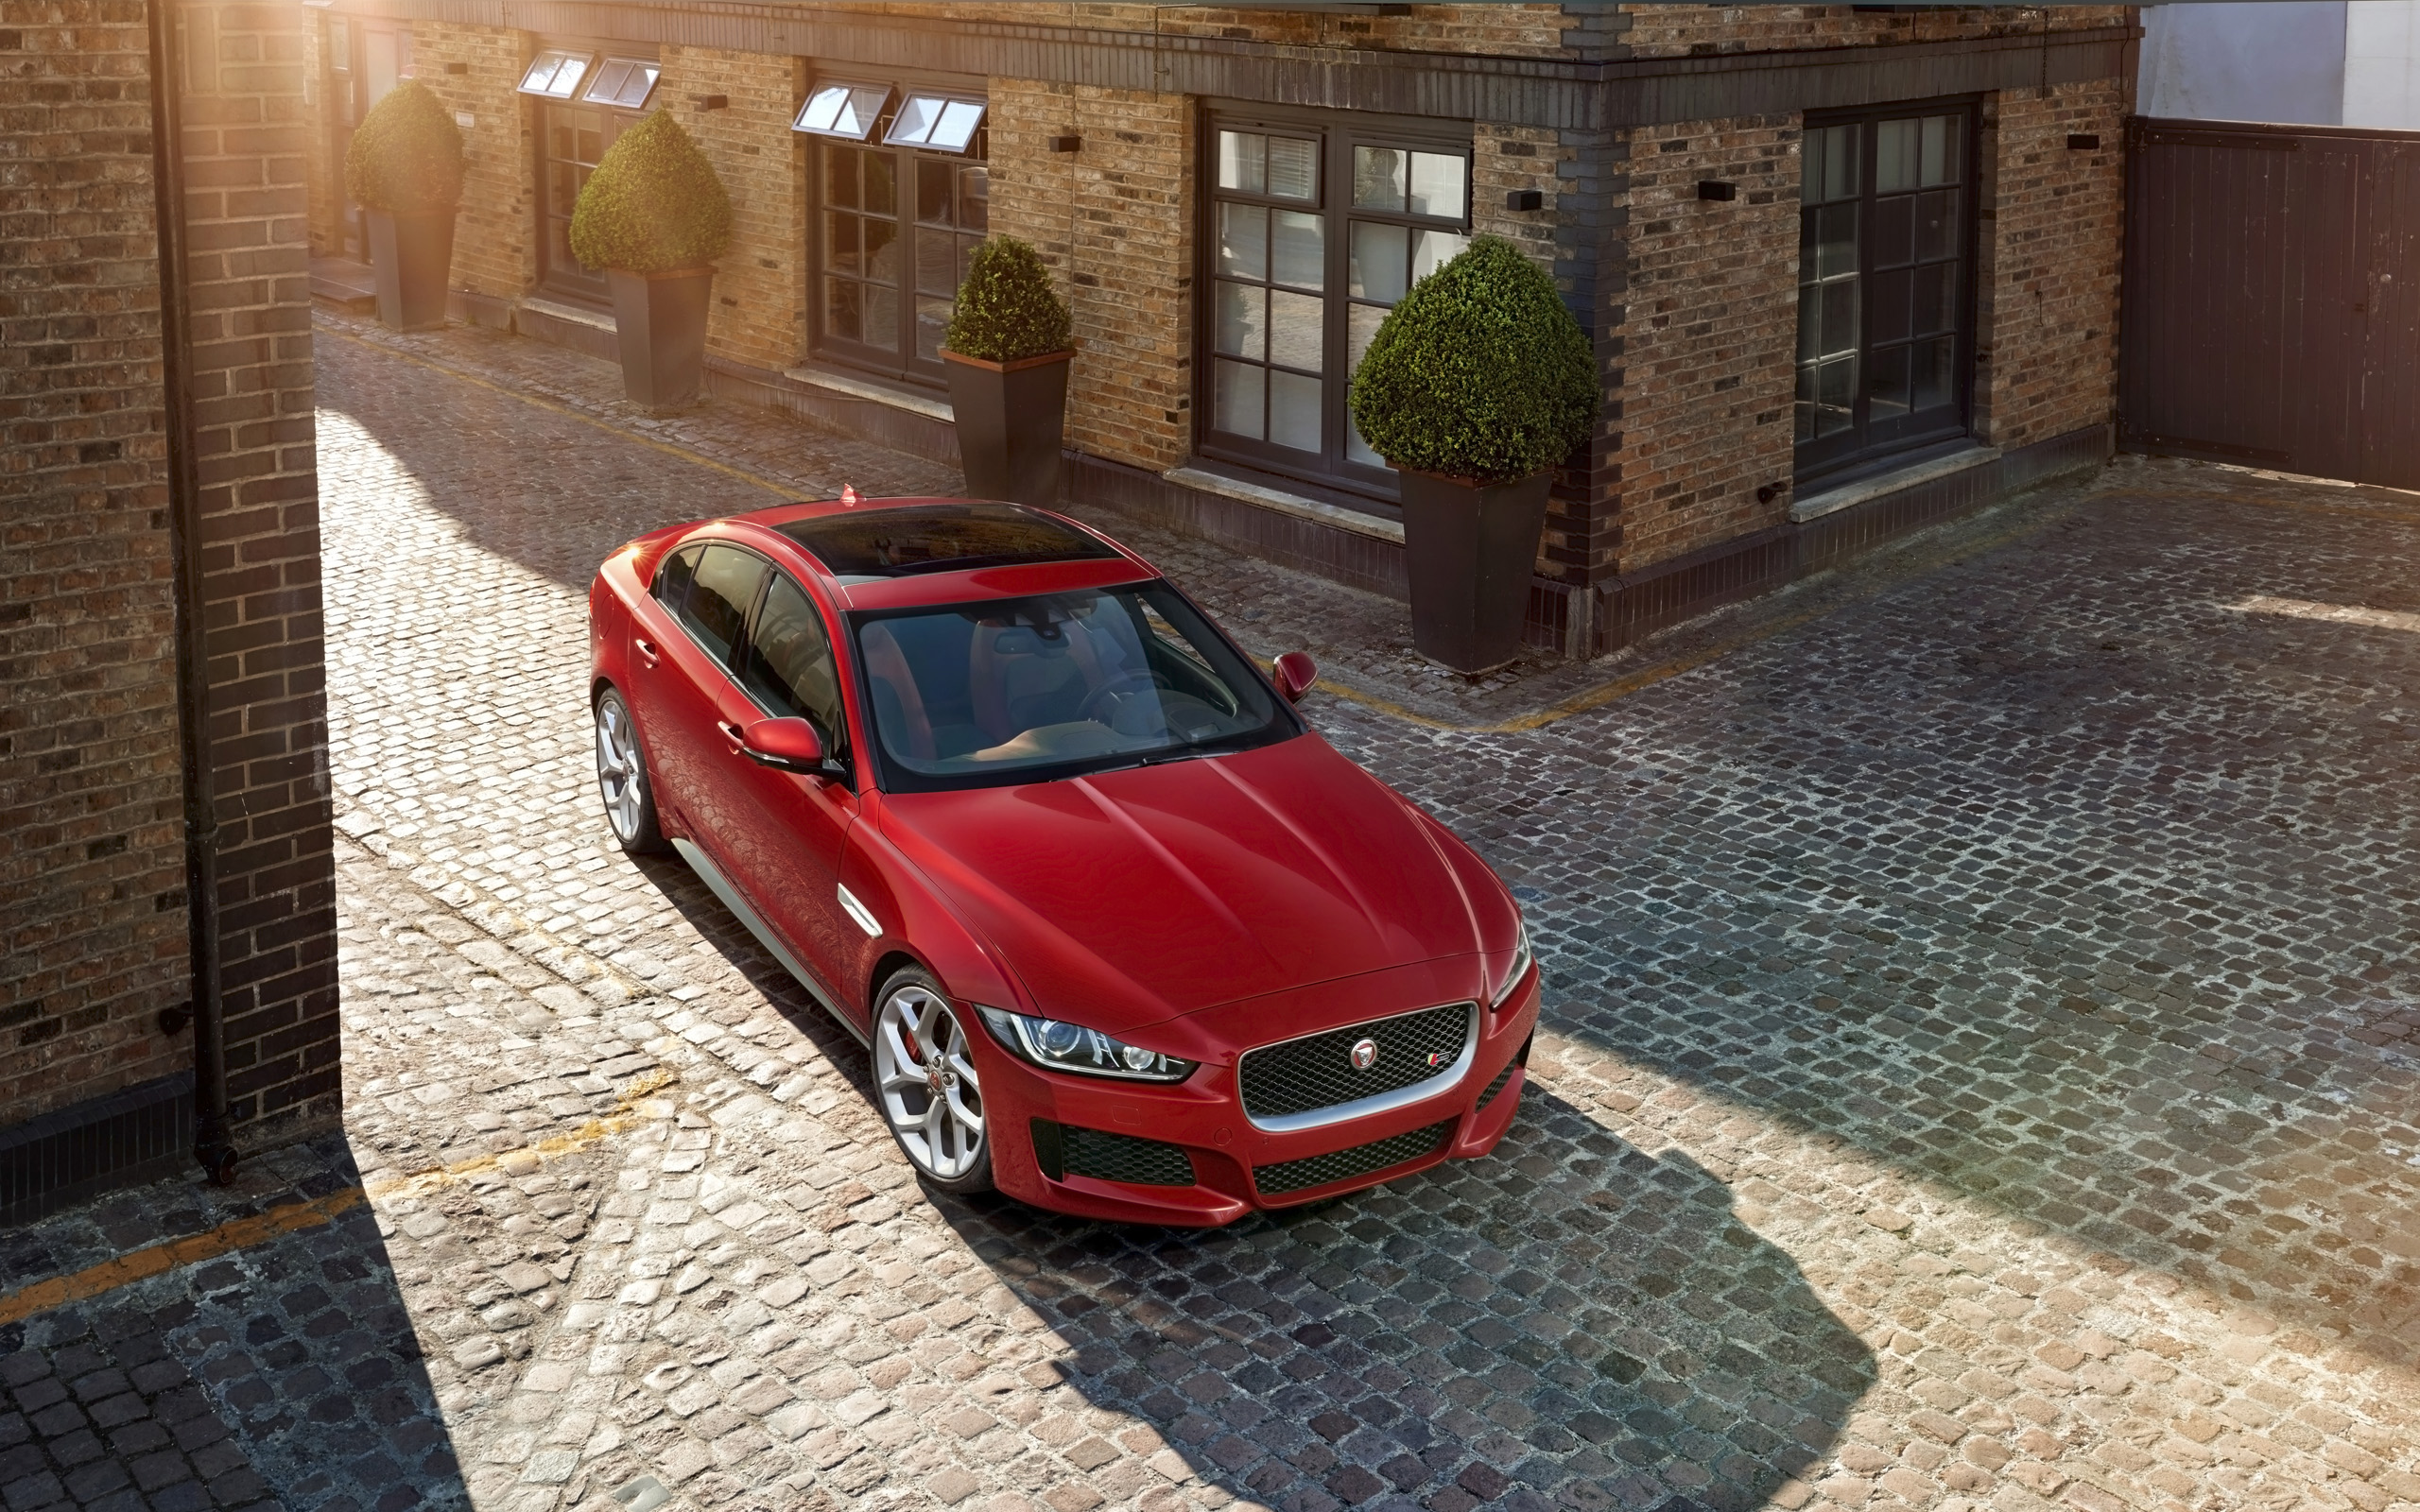 2015 jaguar xe wallpaper hd 48674